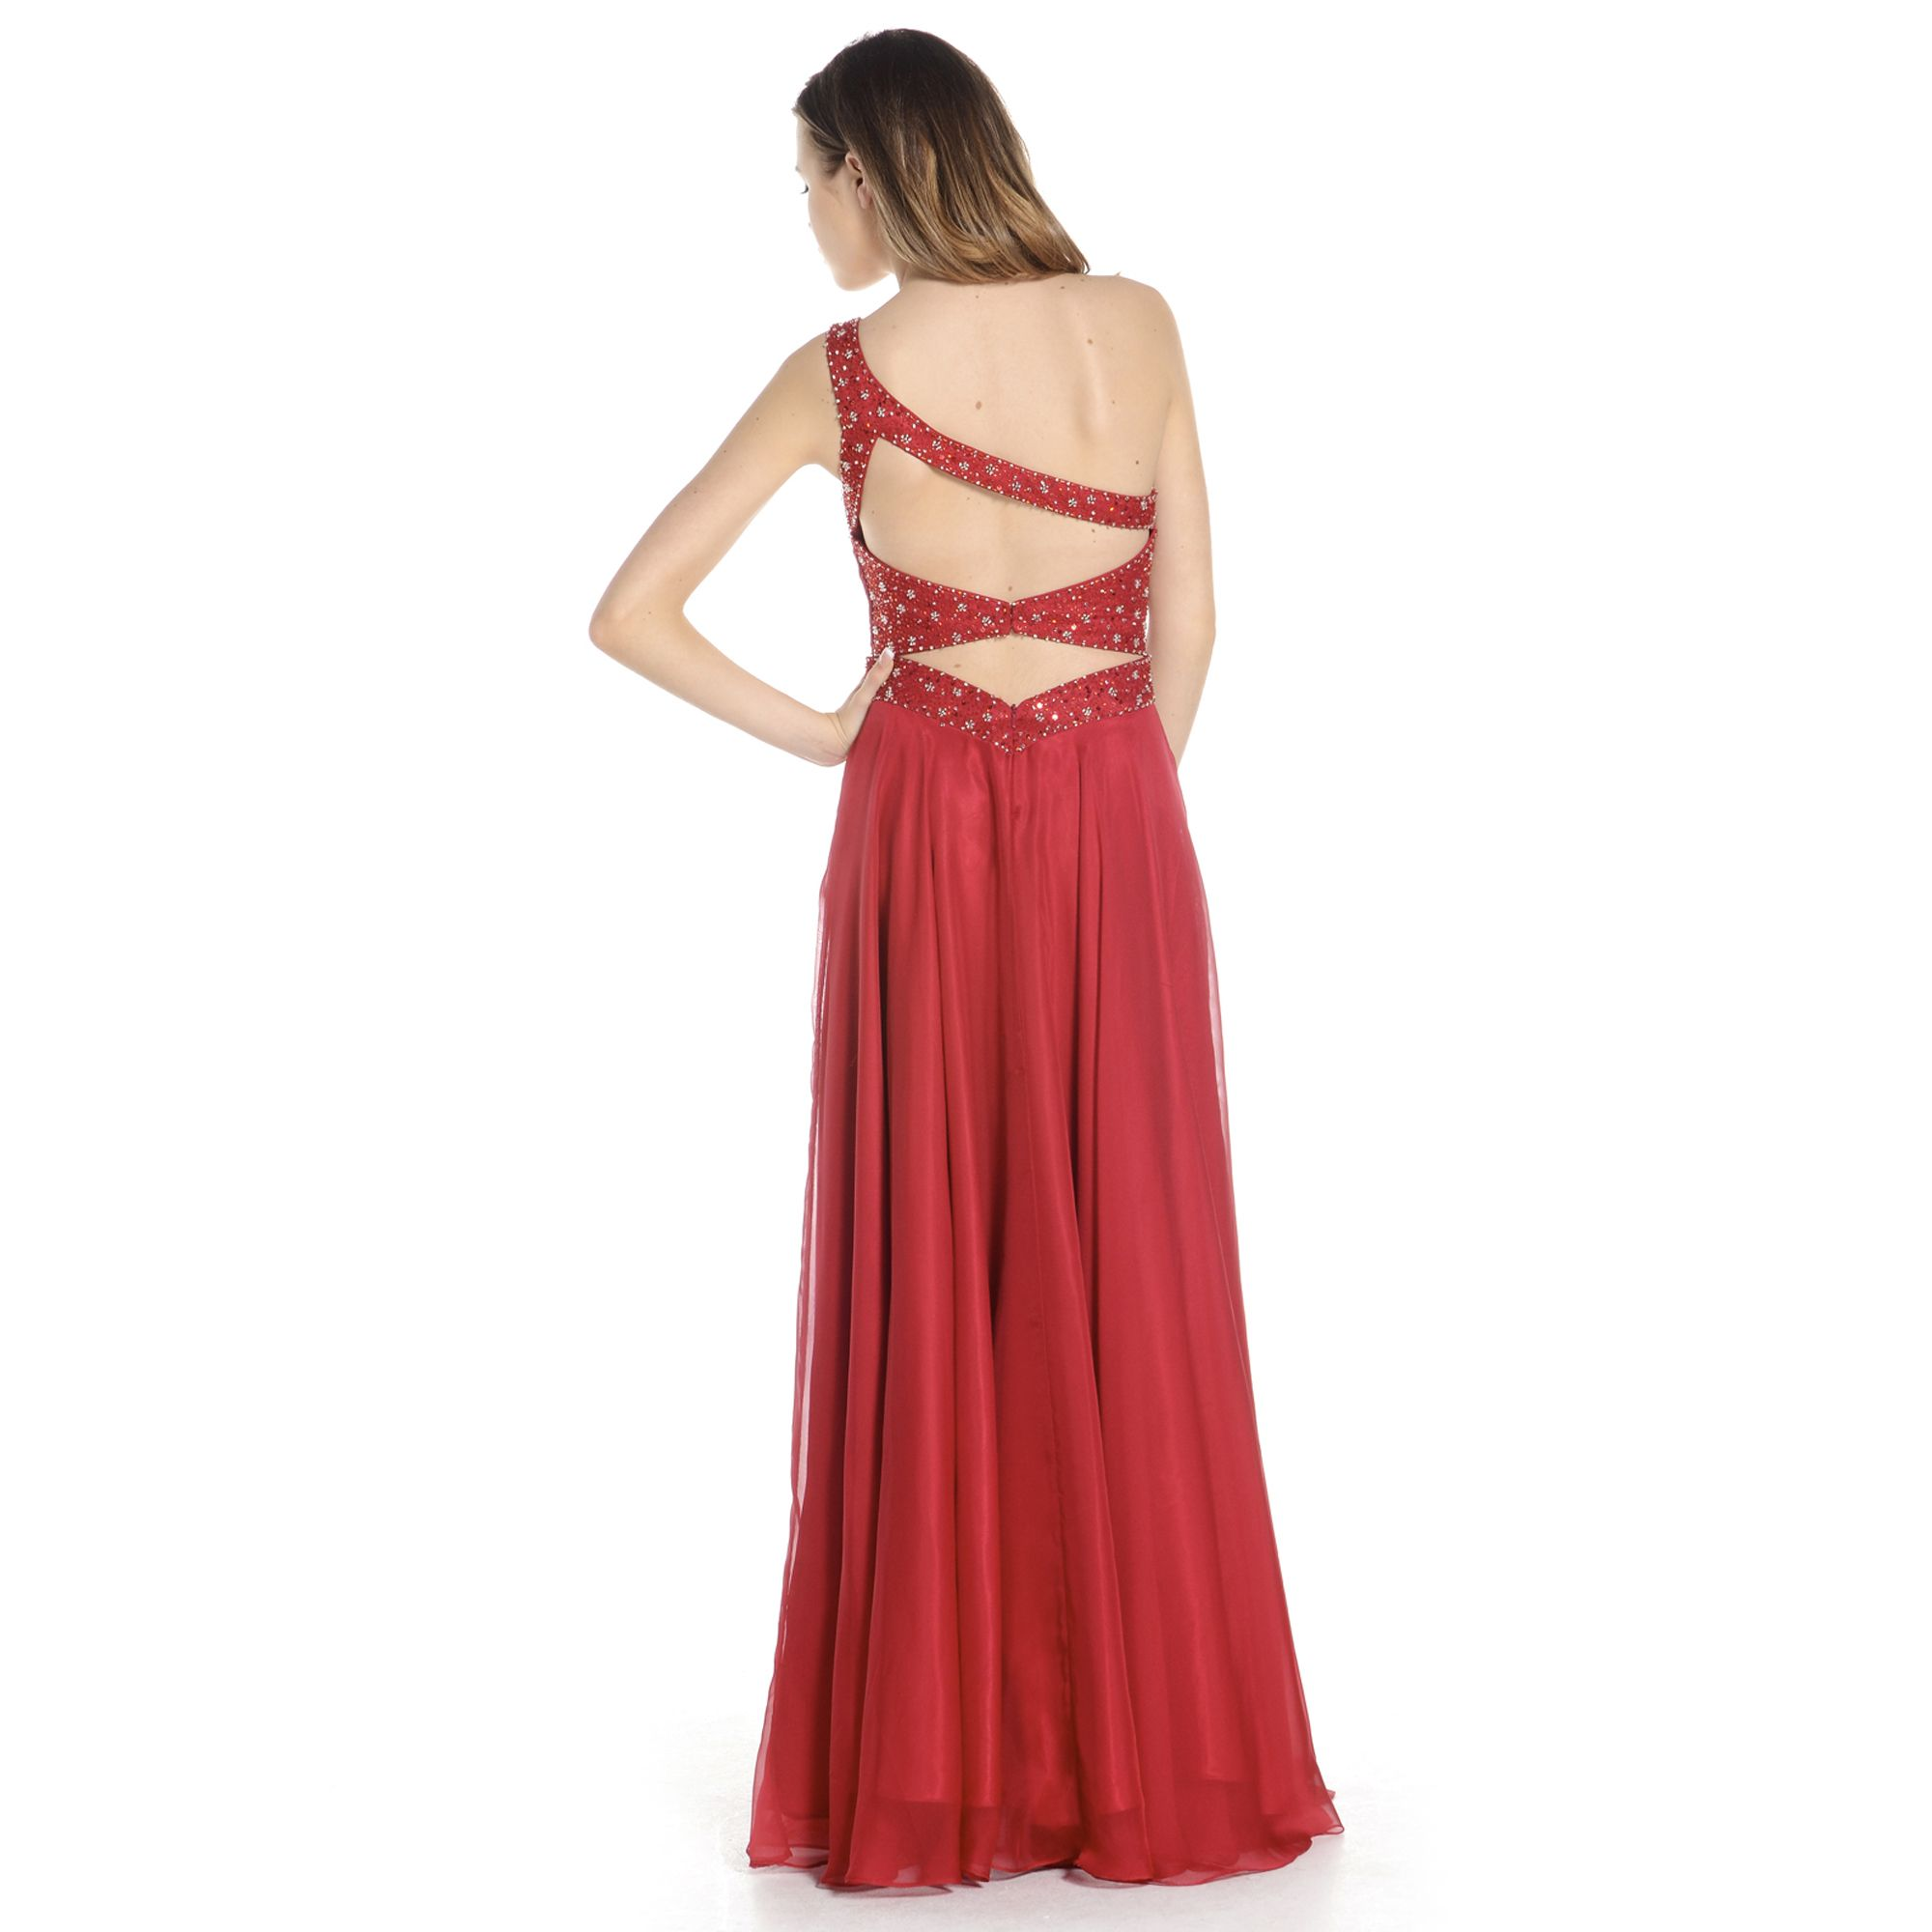 A beautiful backless grecian style gown with diamante and sparkle